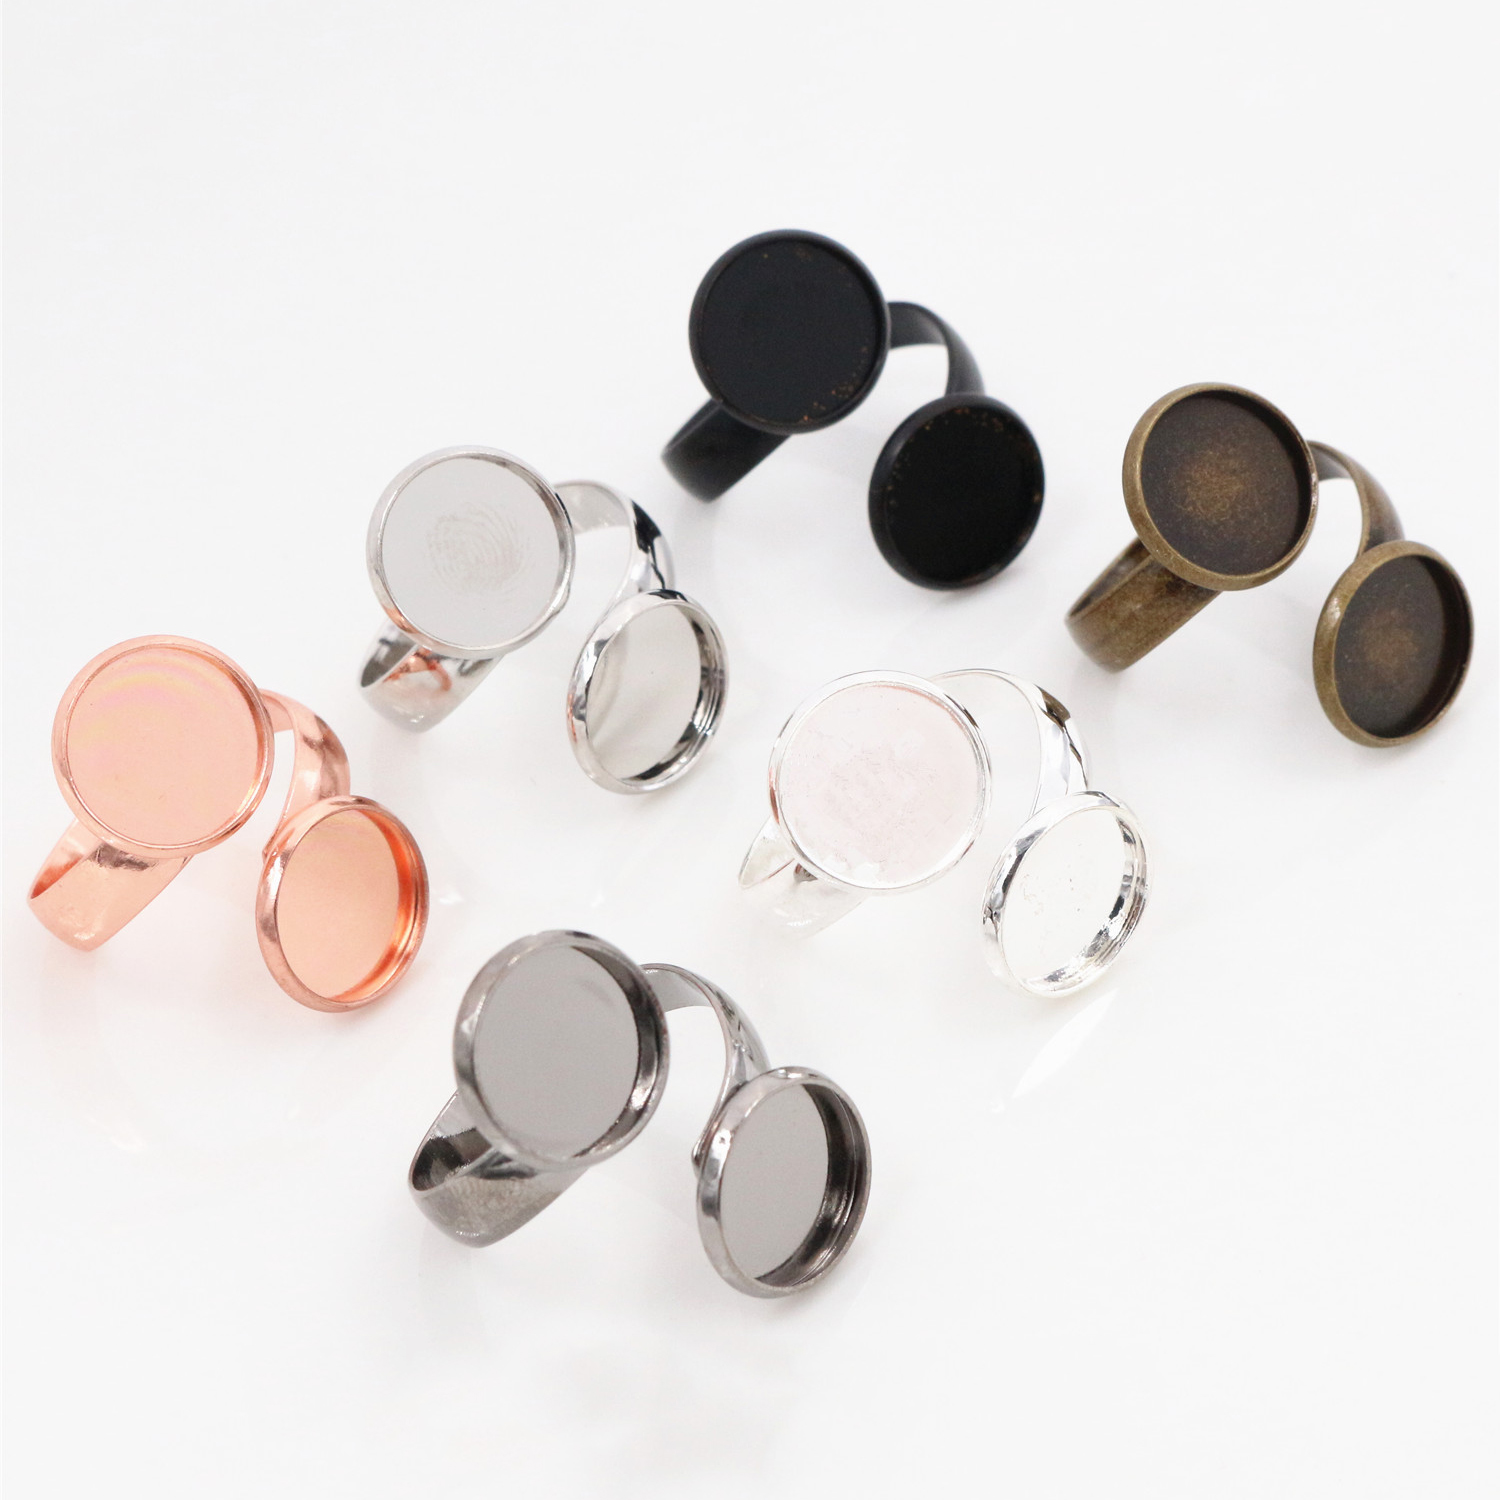 12mm 5pcs/Lot Classic 6 Colors Plated Brass Adjustable Ring Settings Blank/Base,Fit 12mm Glass Cabochons,Buttons;Ring Bezels